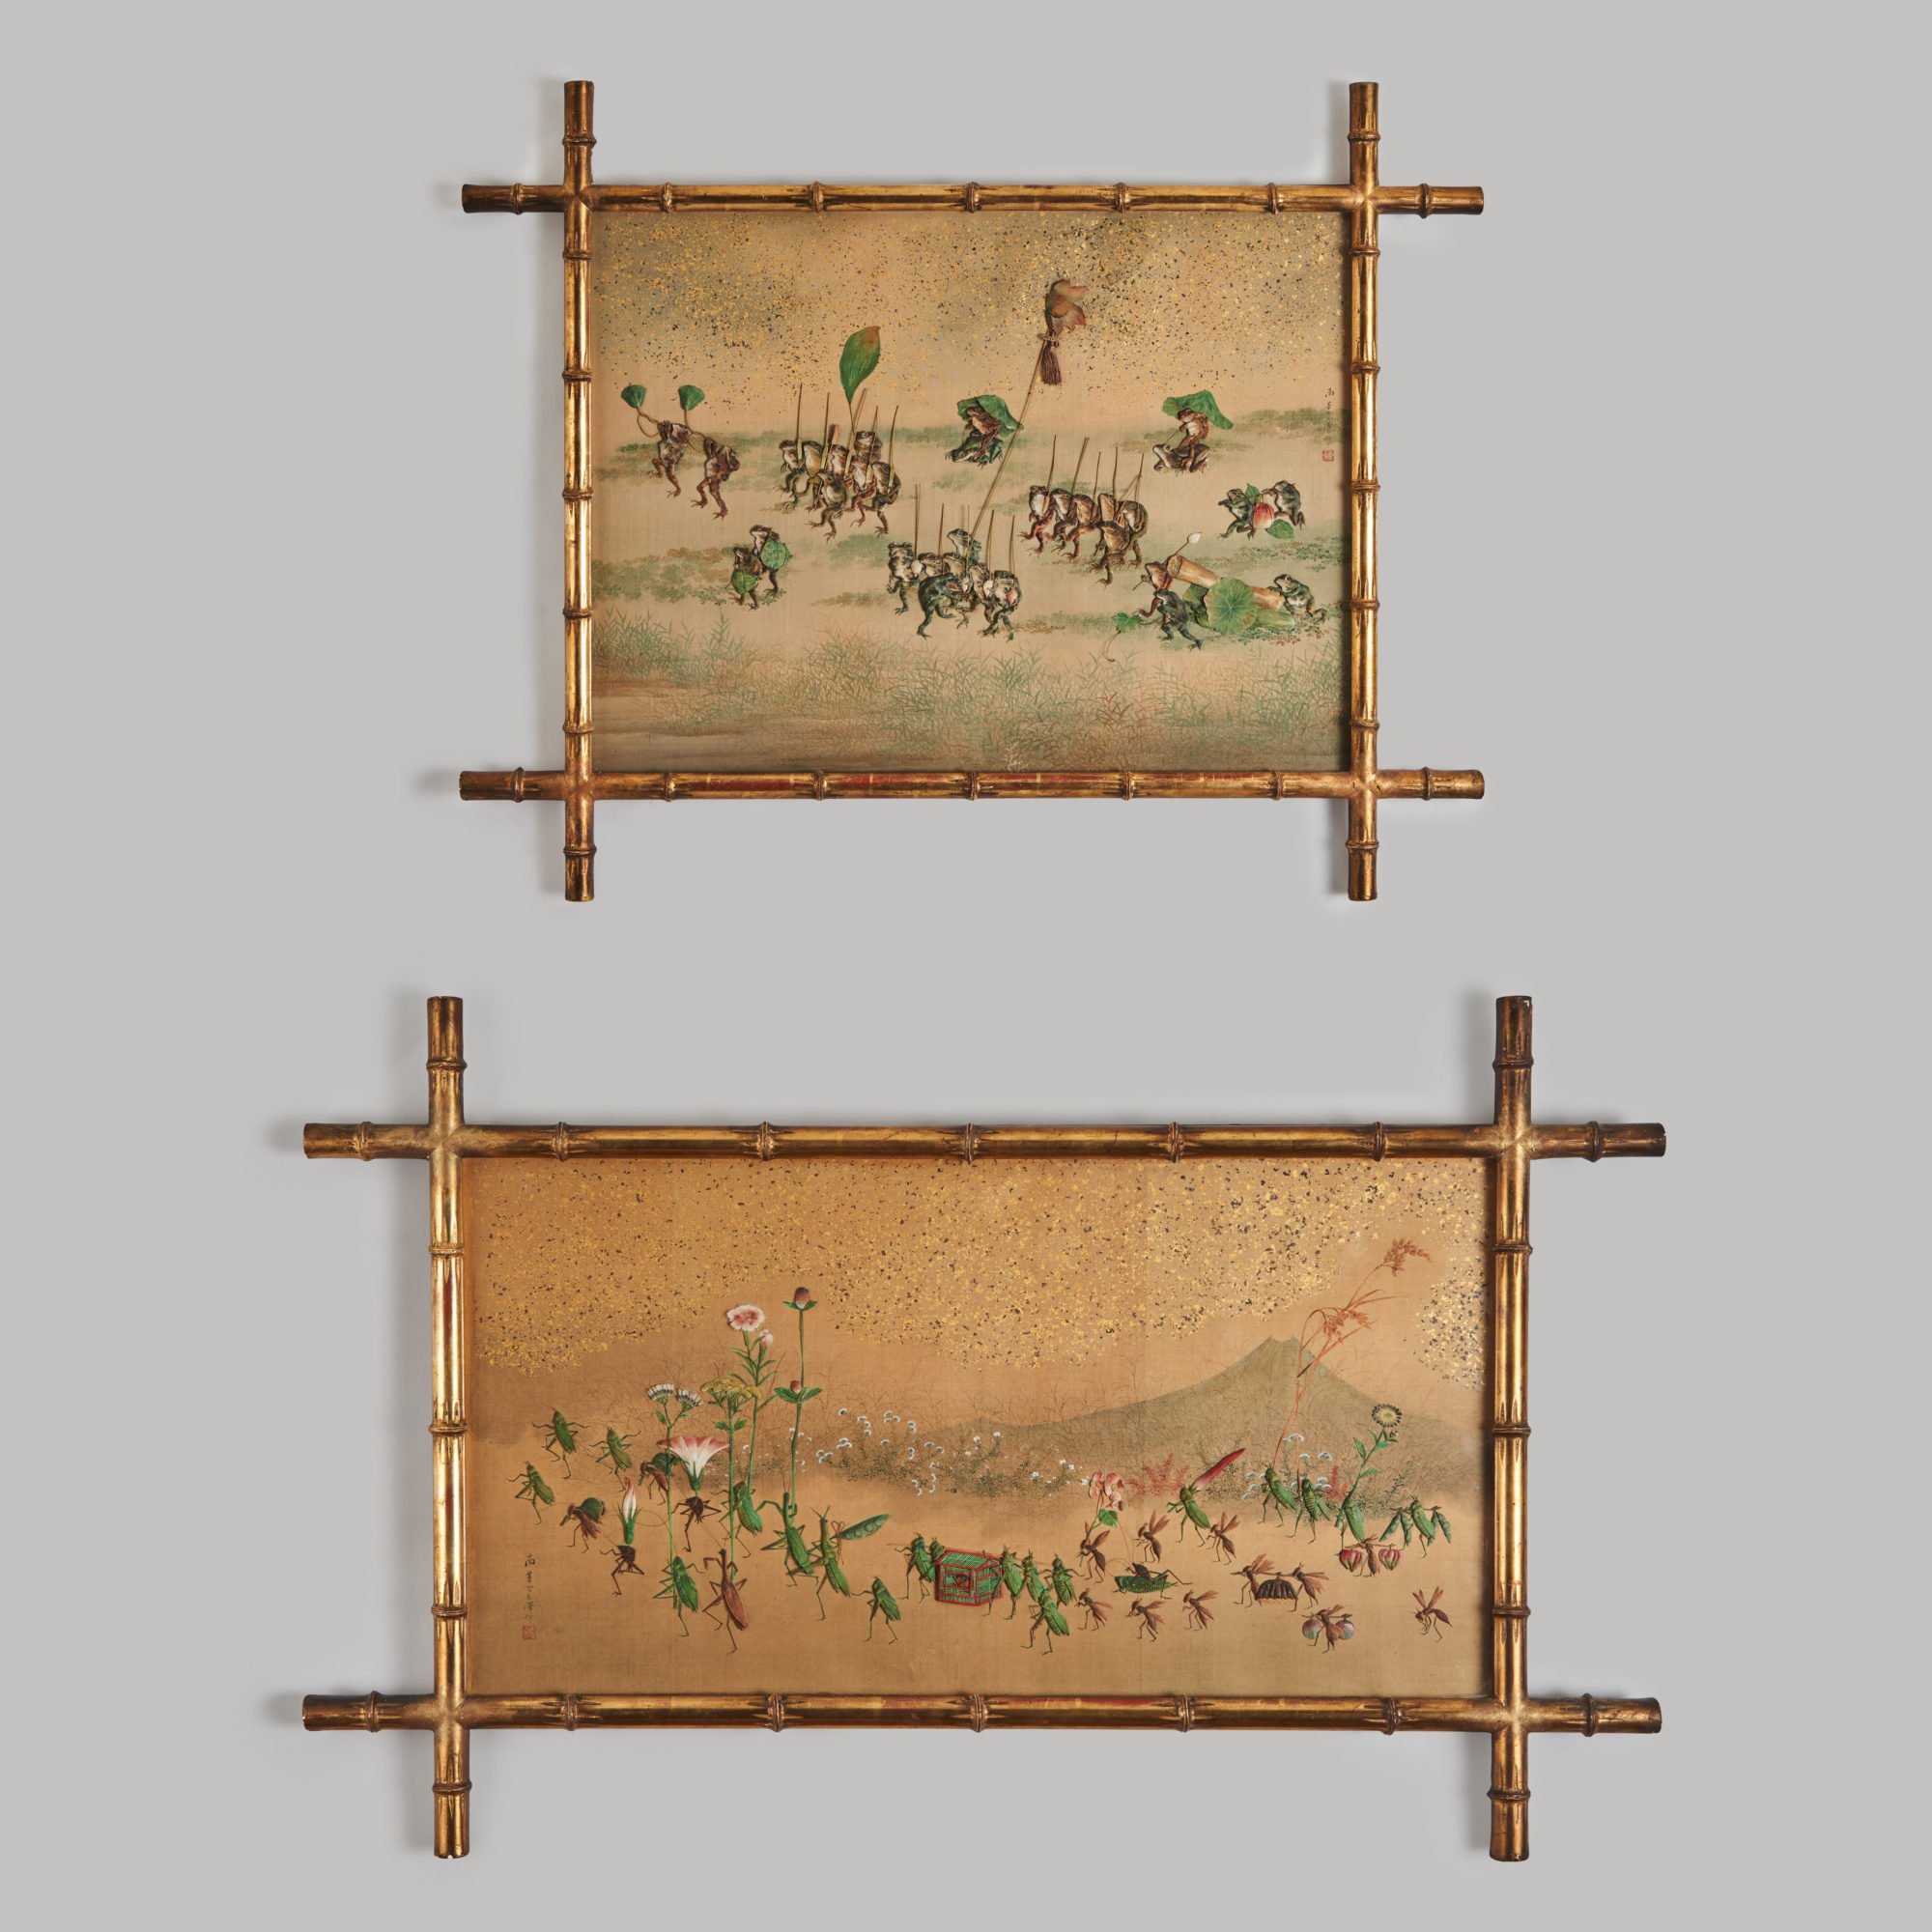 Oshie panels   A fascinating pair of Japanese Oshi-e panels depicting processions of frogs and insects